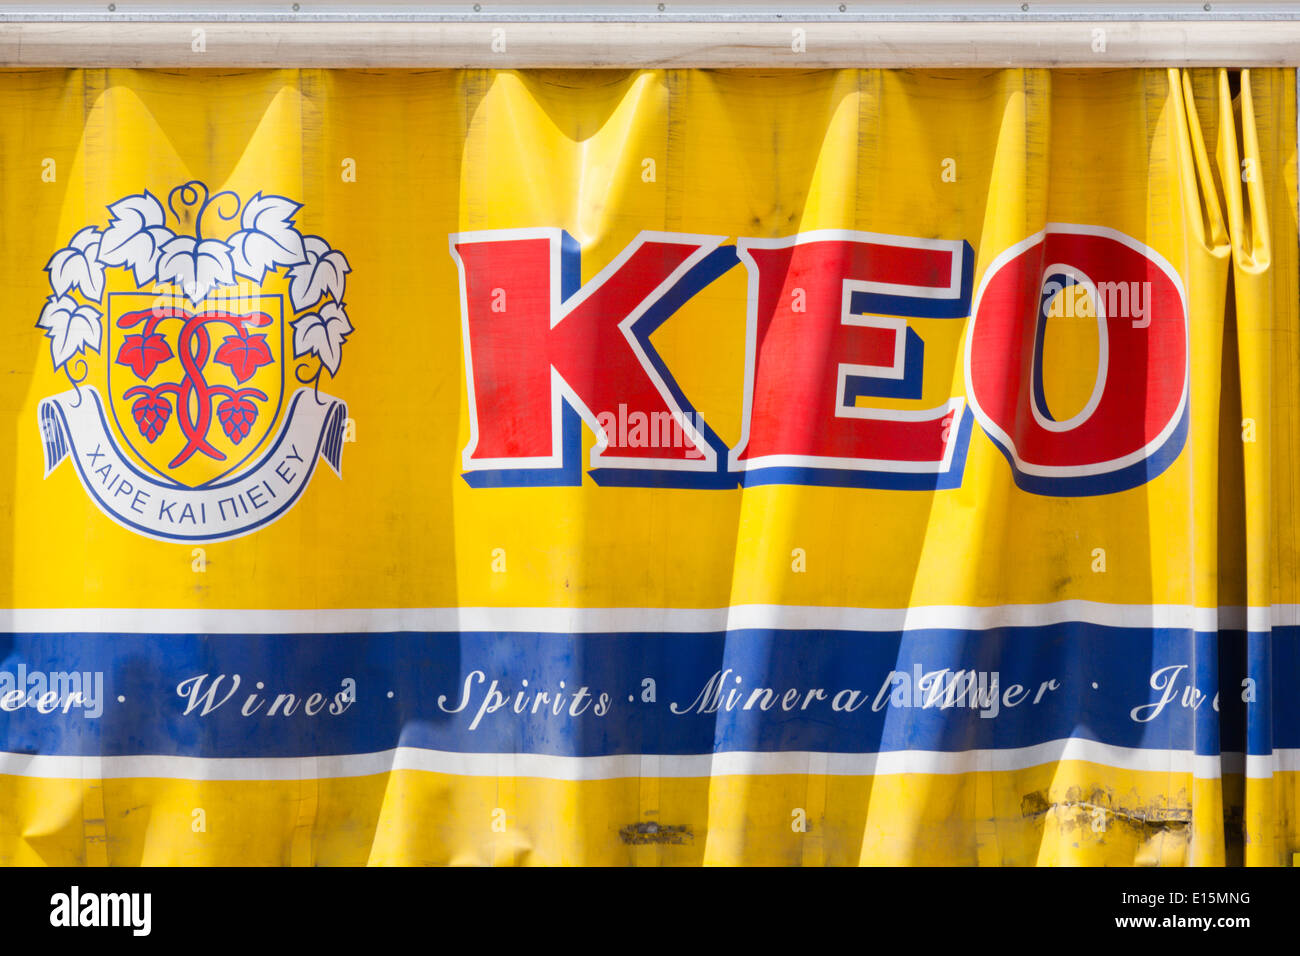 'Keo' curtain side beer delivery truck. - Stock Image